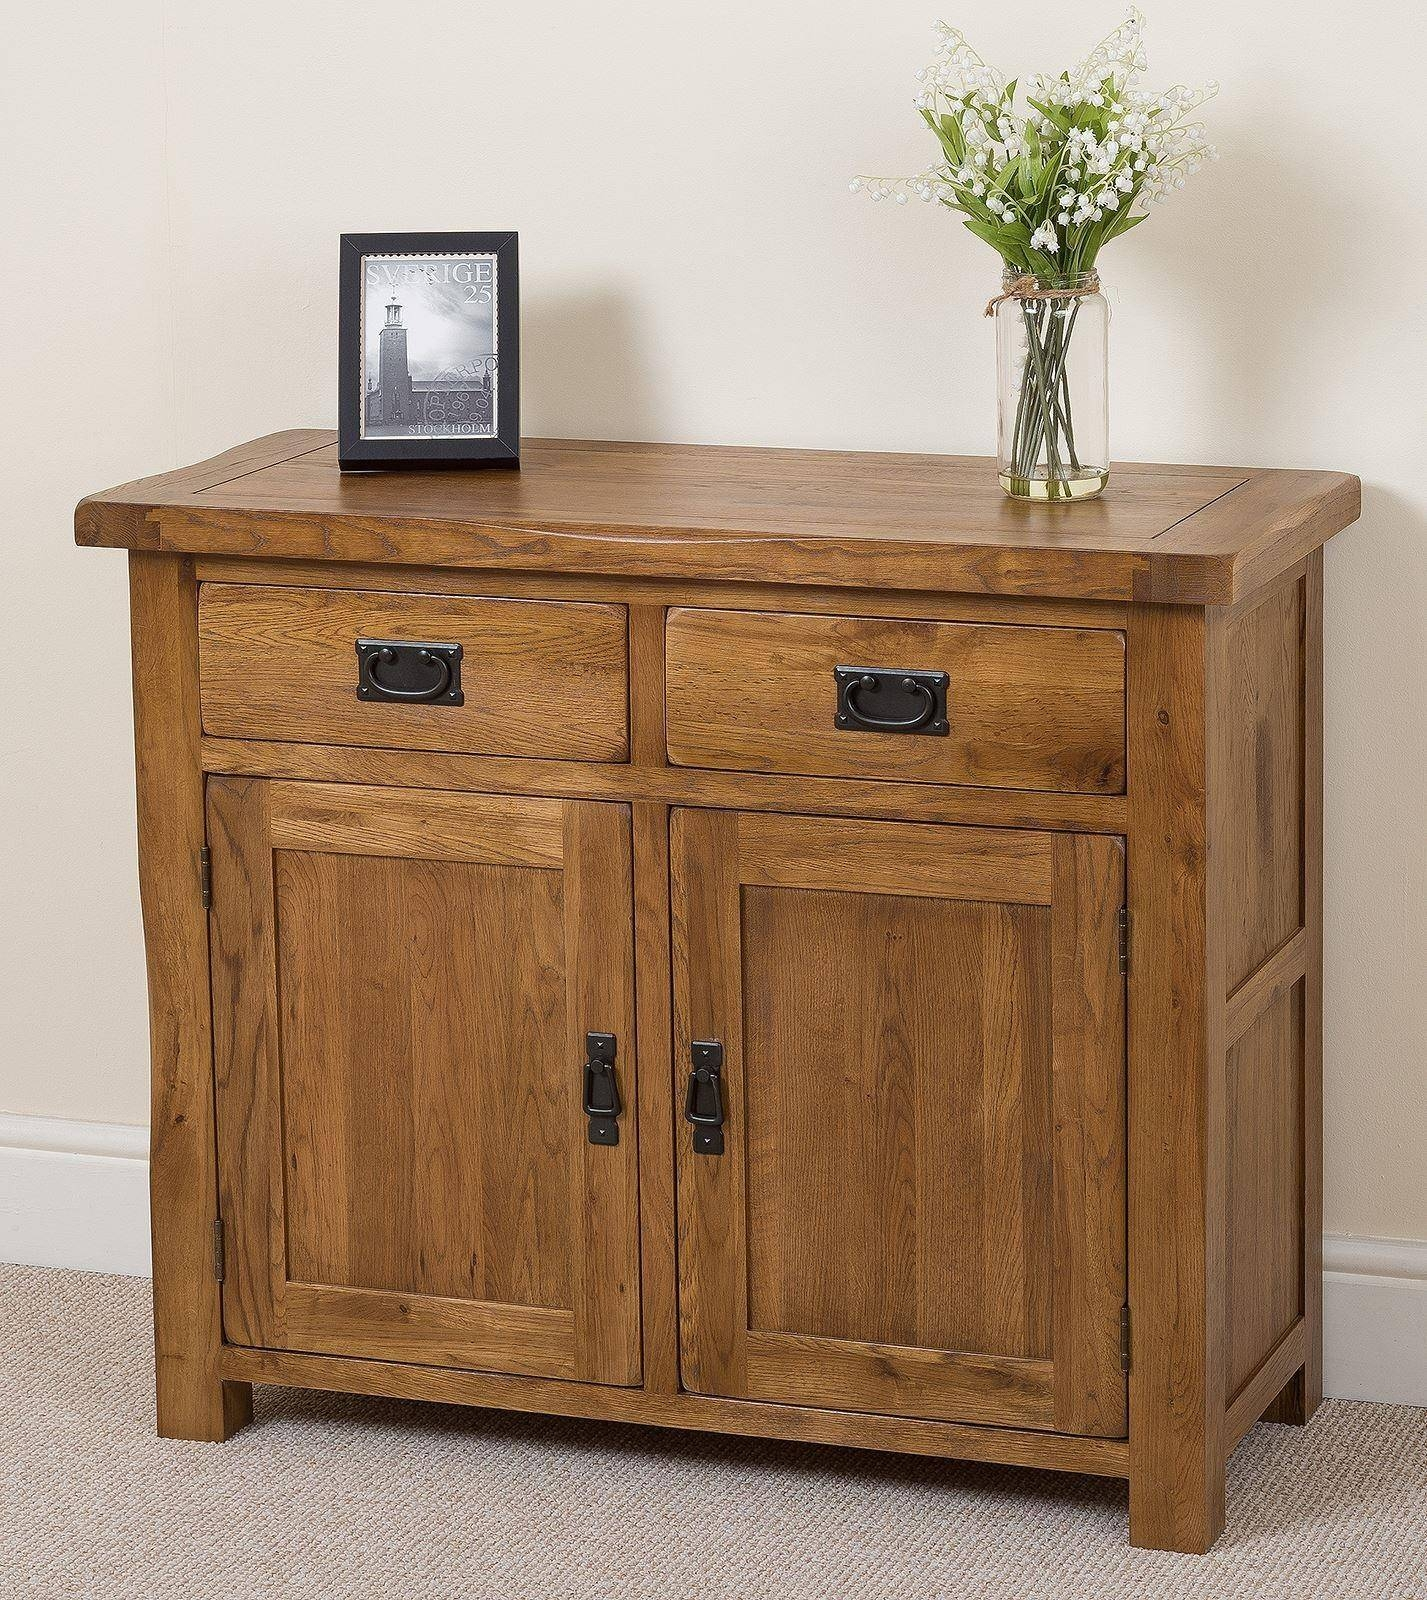 15 collection of small wooden sideboards. Black Bedroom Furniture Sets. Home Design Ideas